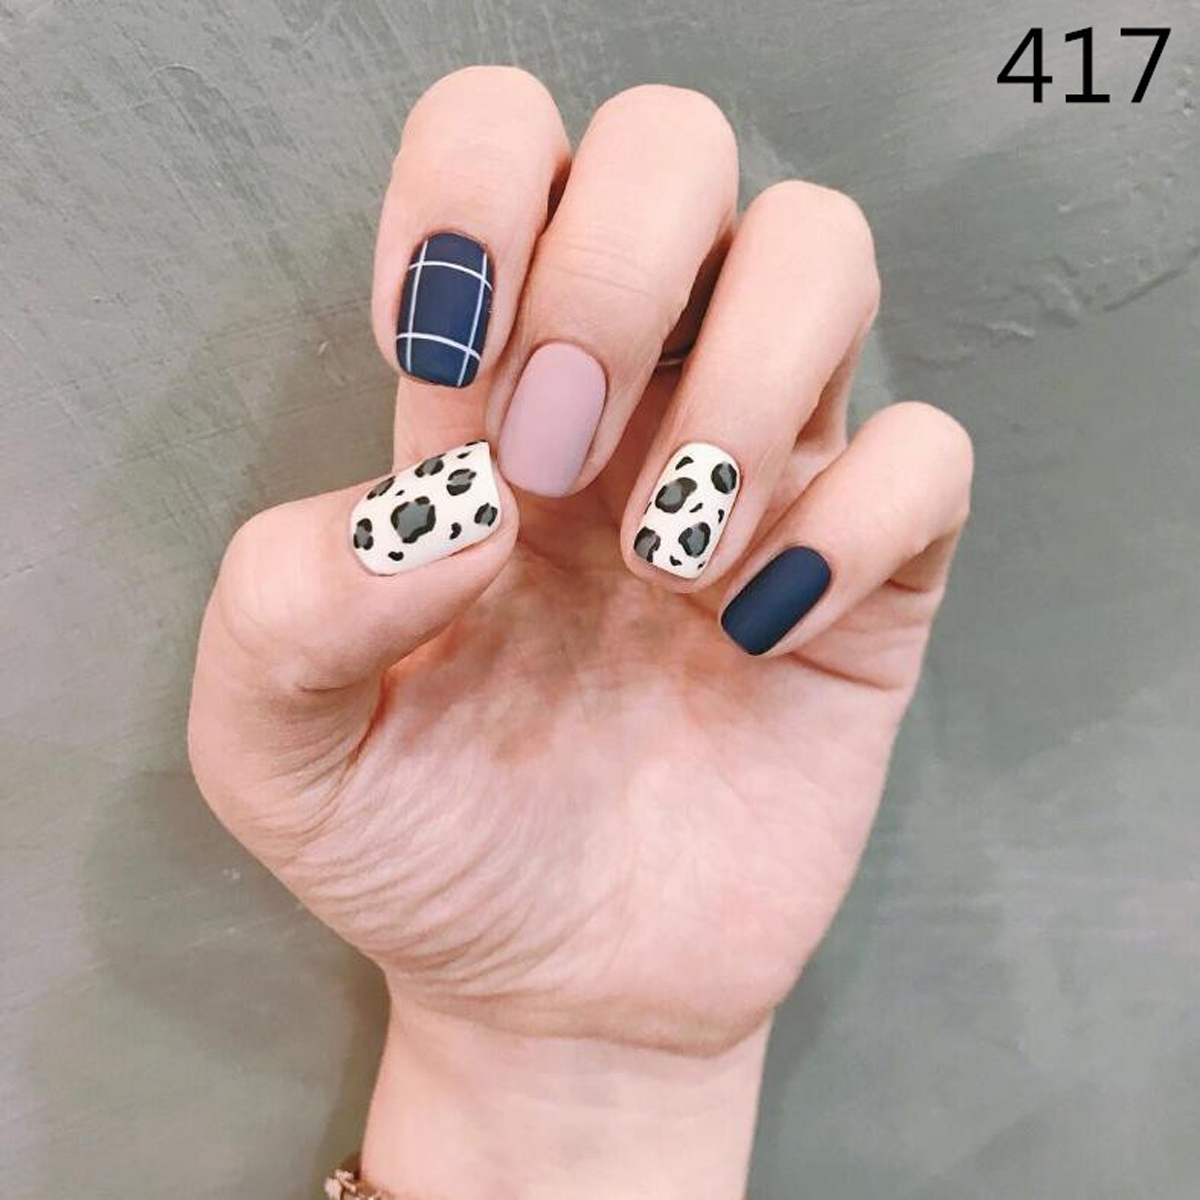 New Leopard Manicure Nail Sticker Waterproof Lasting 14 Stickers/sheet Matte Scrub Nail Jewelry Environmental Protection